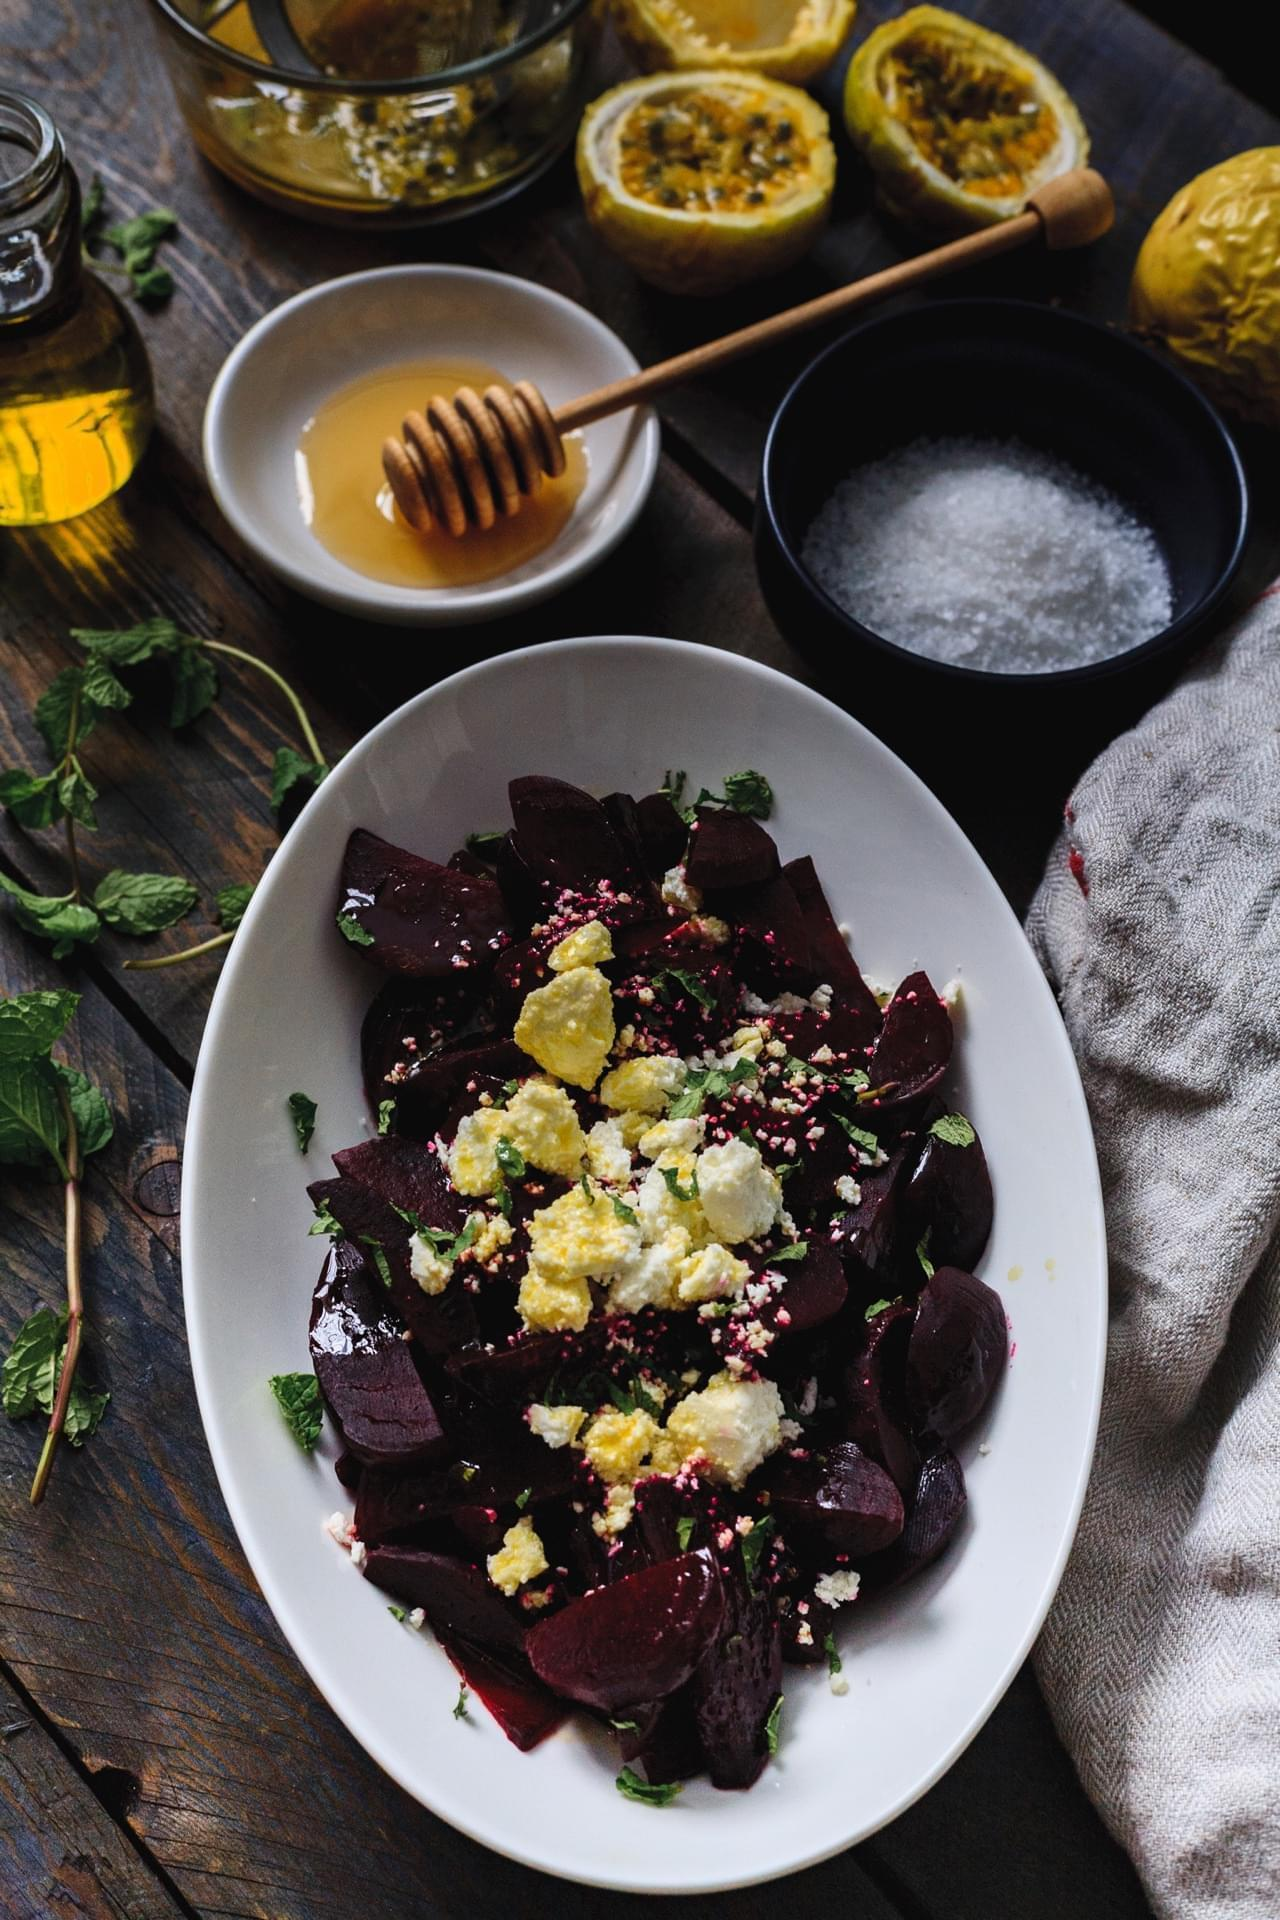 Beet salad with passionfruit dressing